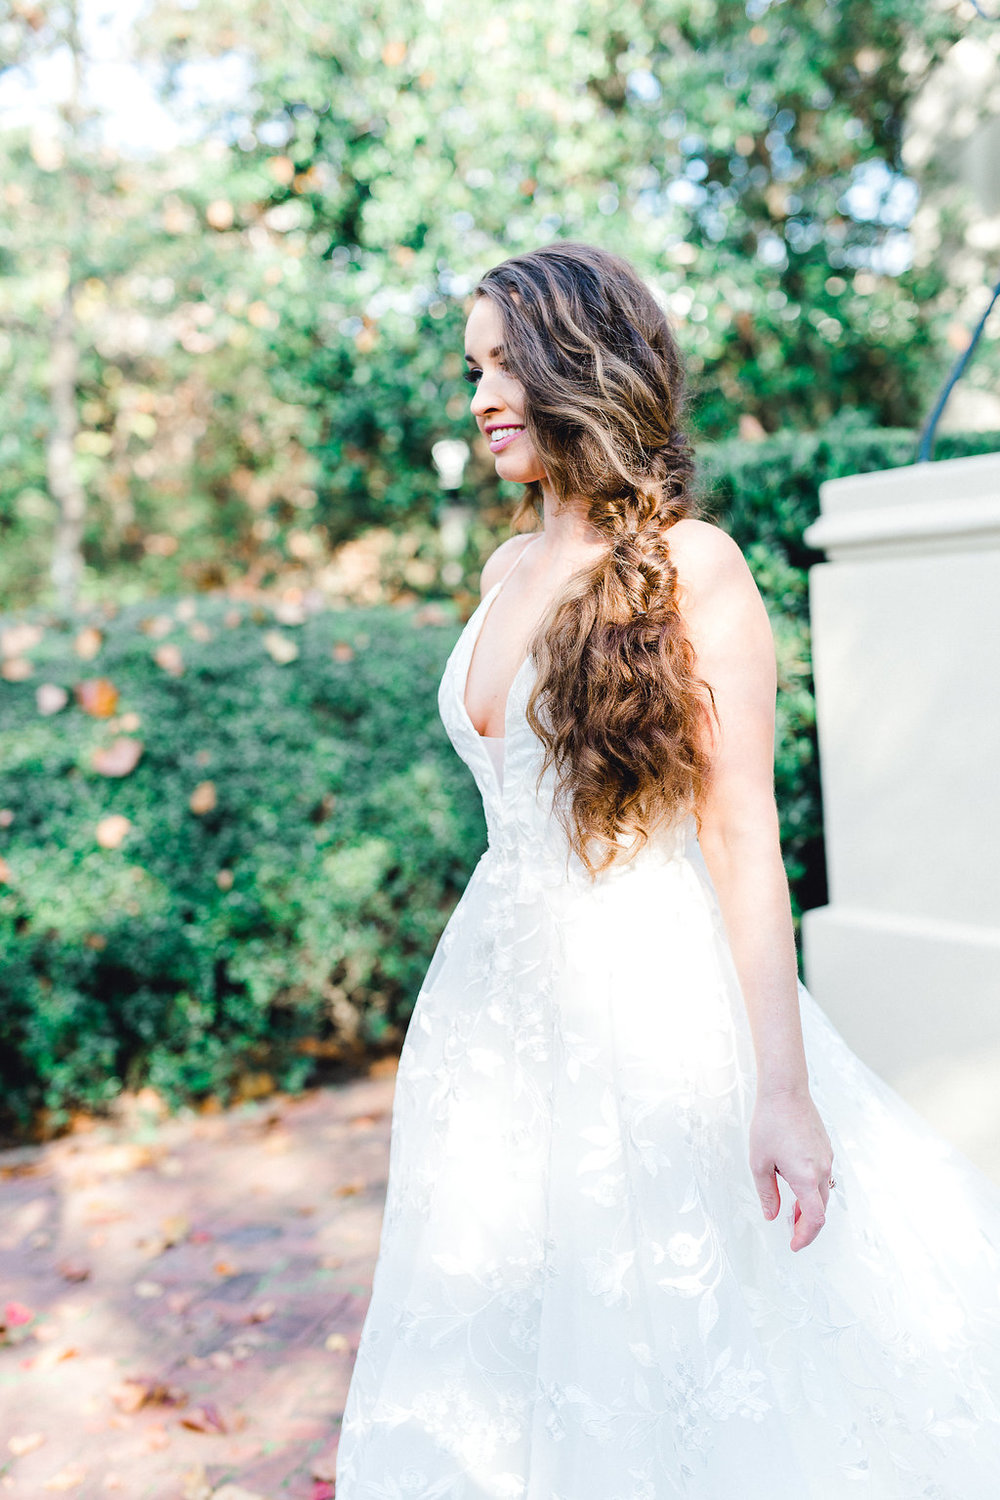 blush-by-hayley-paige-fleur-de-lis-ivory-and-beau-savannah-bridal-boutique-savannah-wedding-dresses-savannah-bridal-shop-savannah-weddings-ships-of-the-sea-wedding-inspiration.JPG